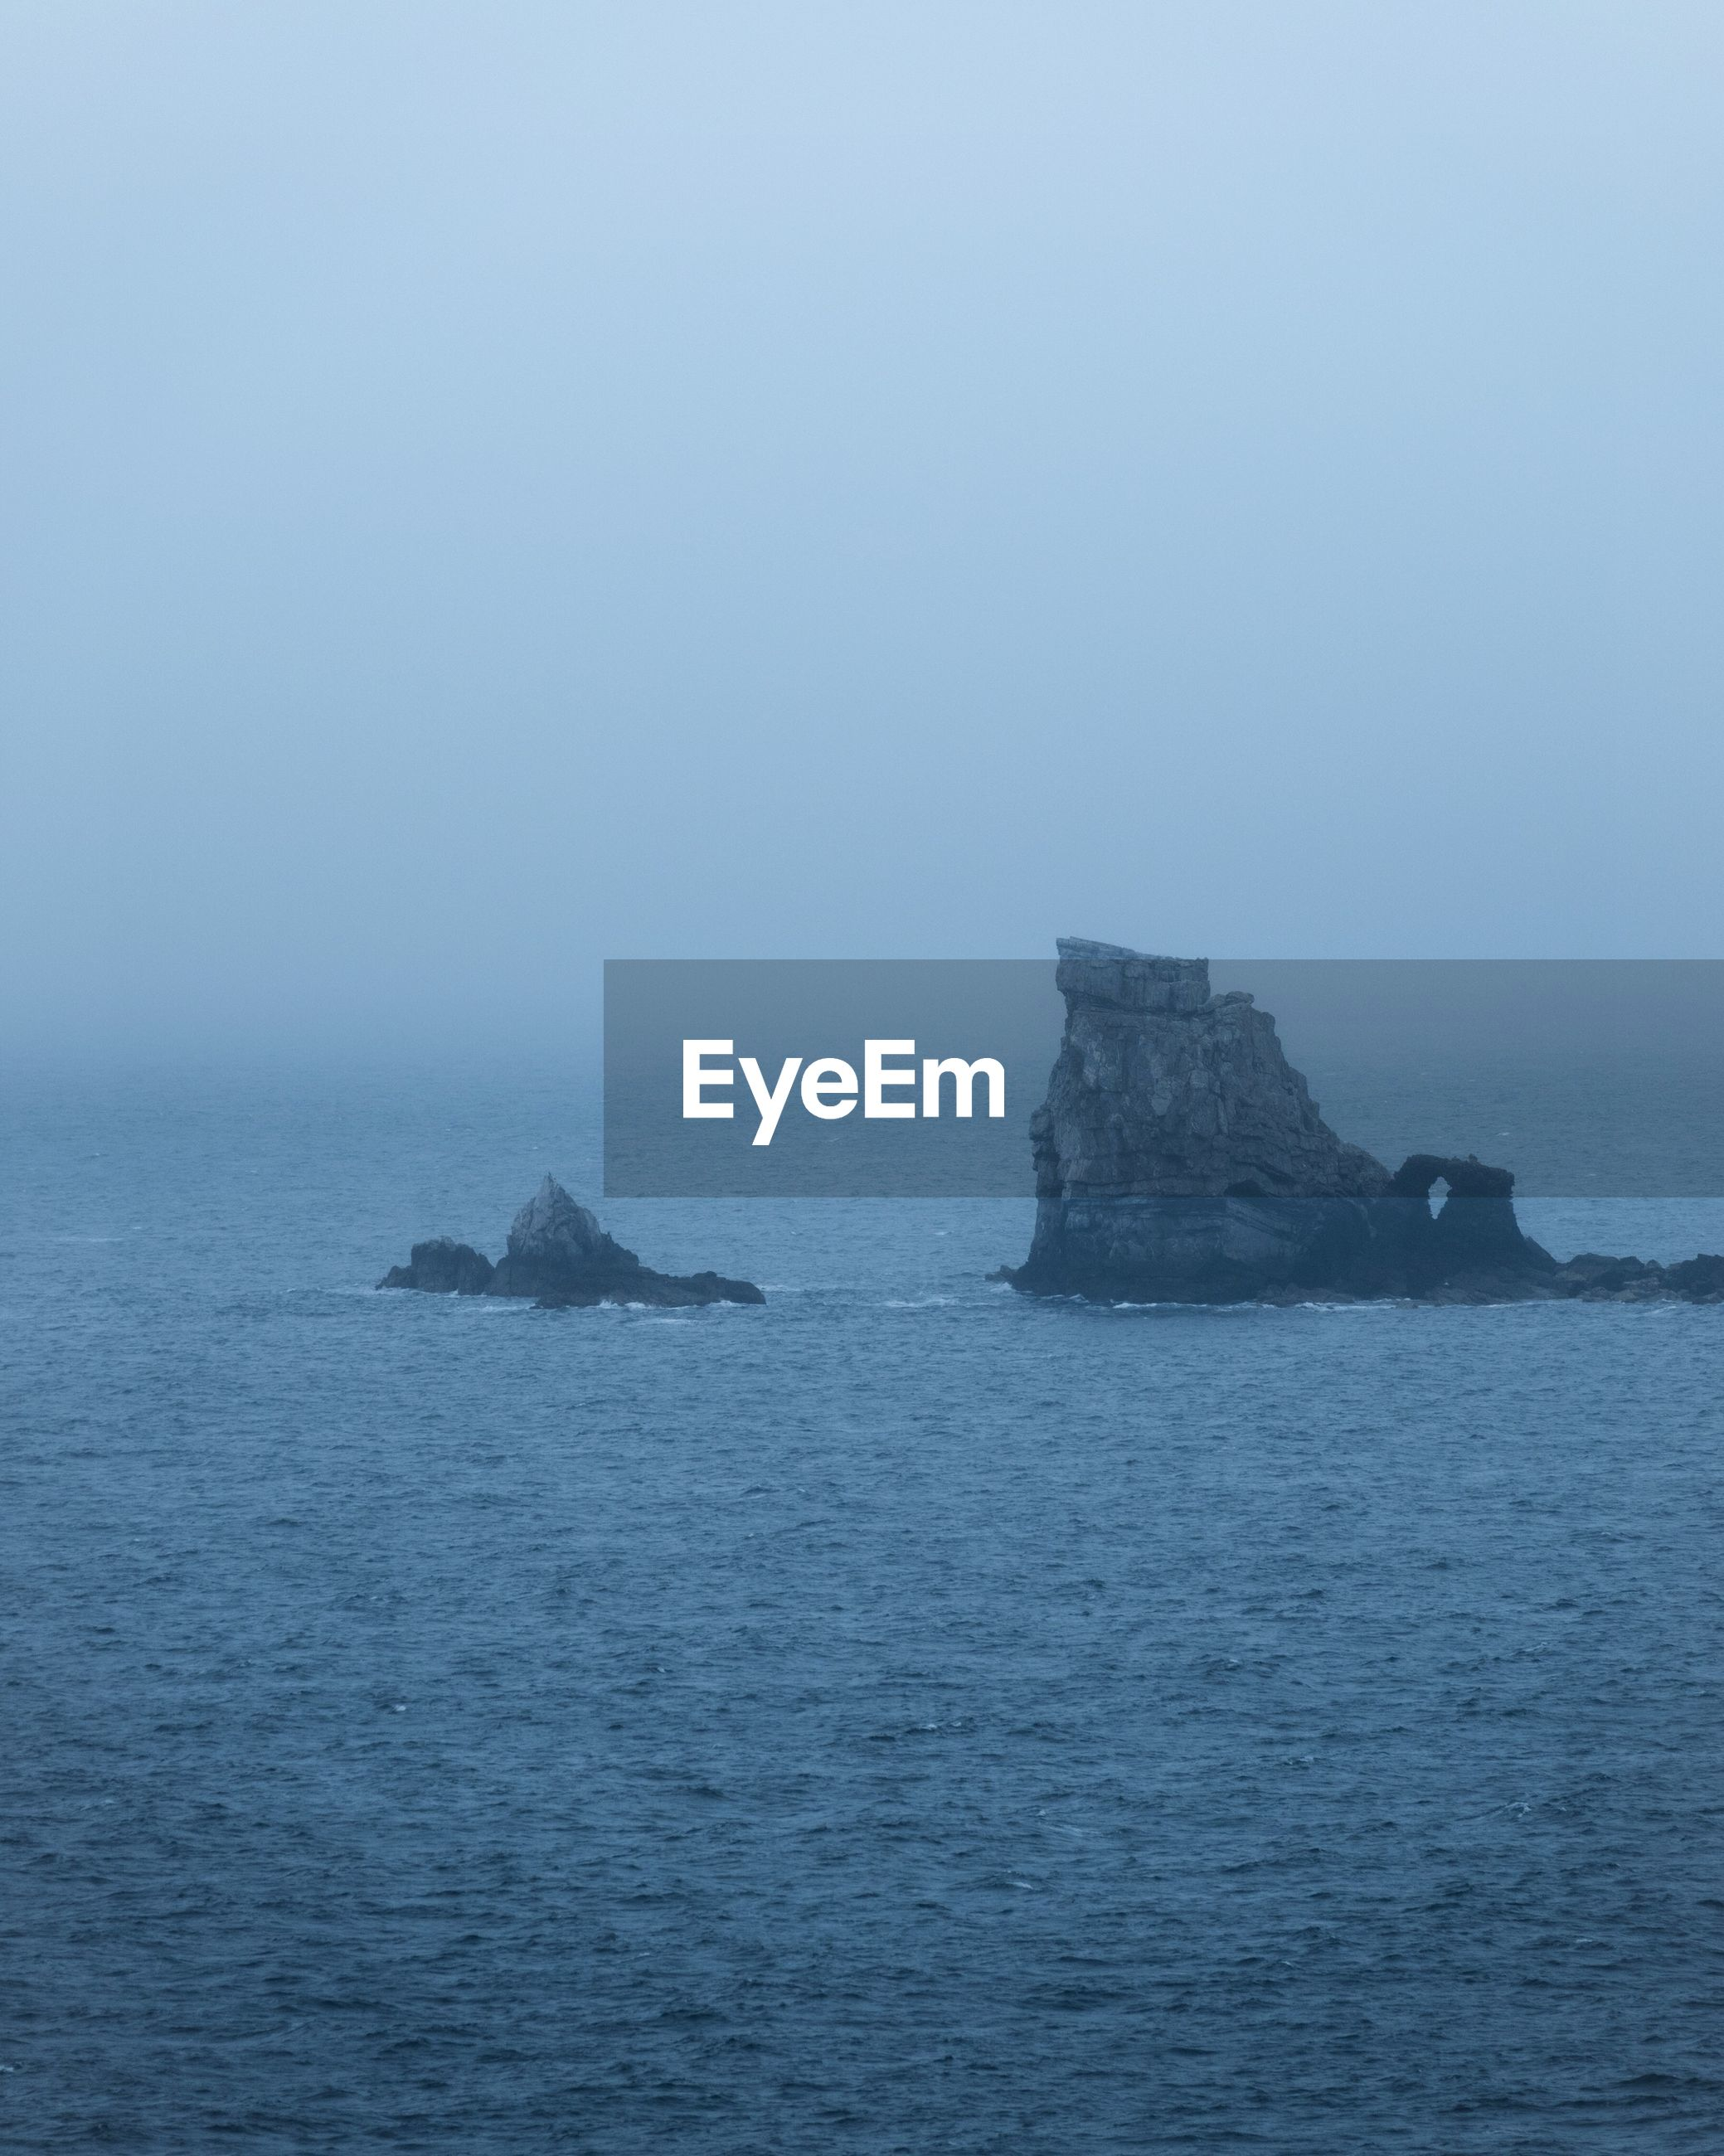 SCENIC VIEW OF SEA AGAINST SKY IN FOGGY WEATHER